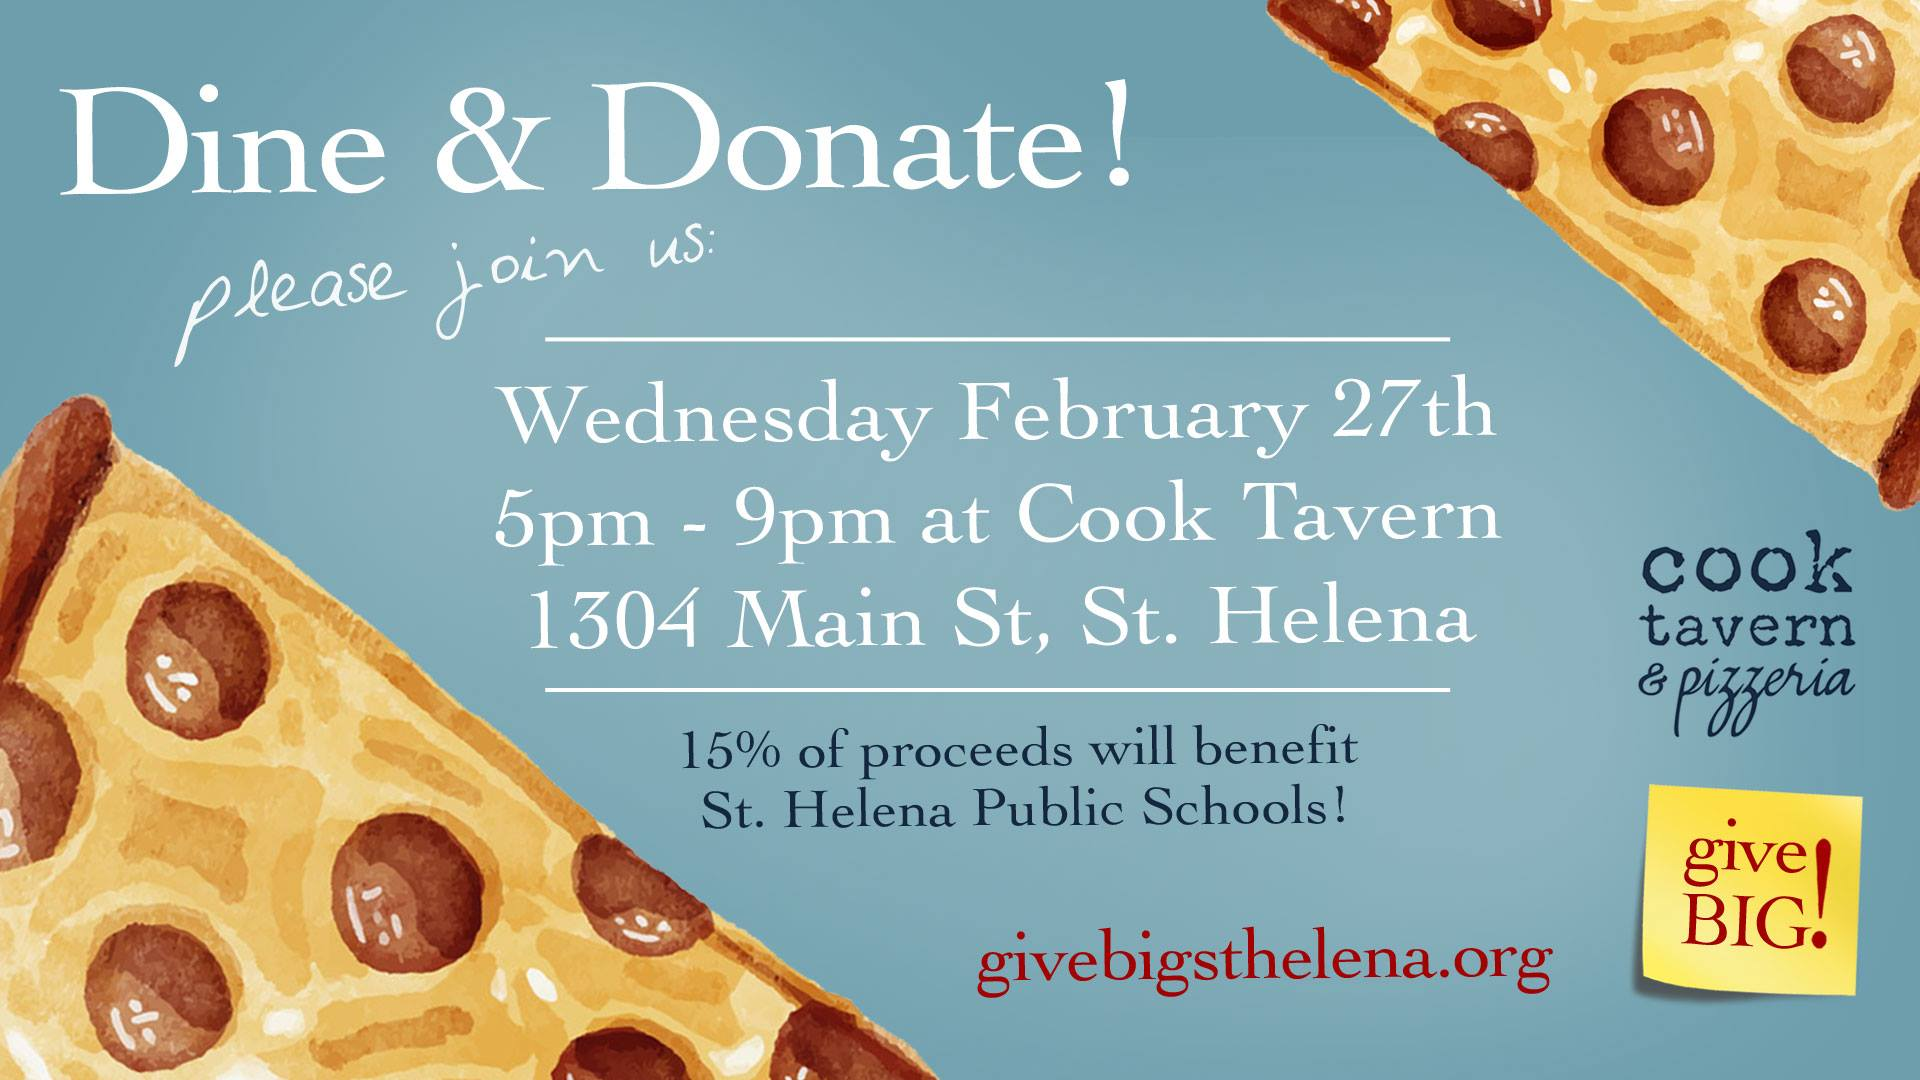 Dine & Donate at Cook Tavern!